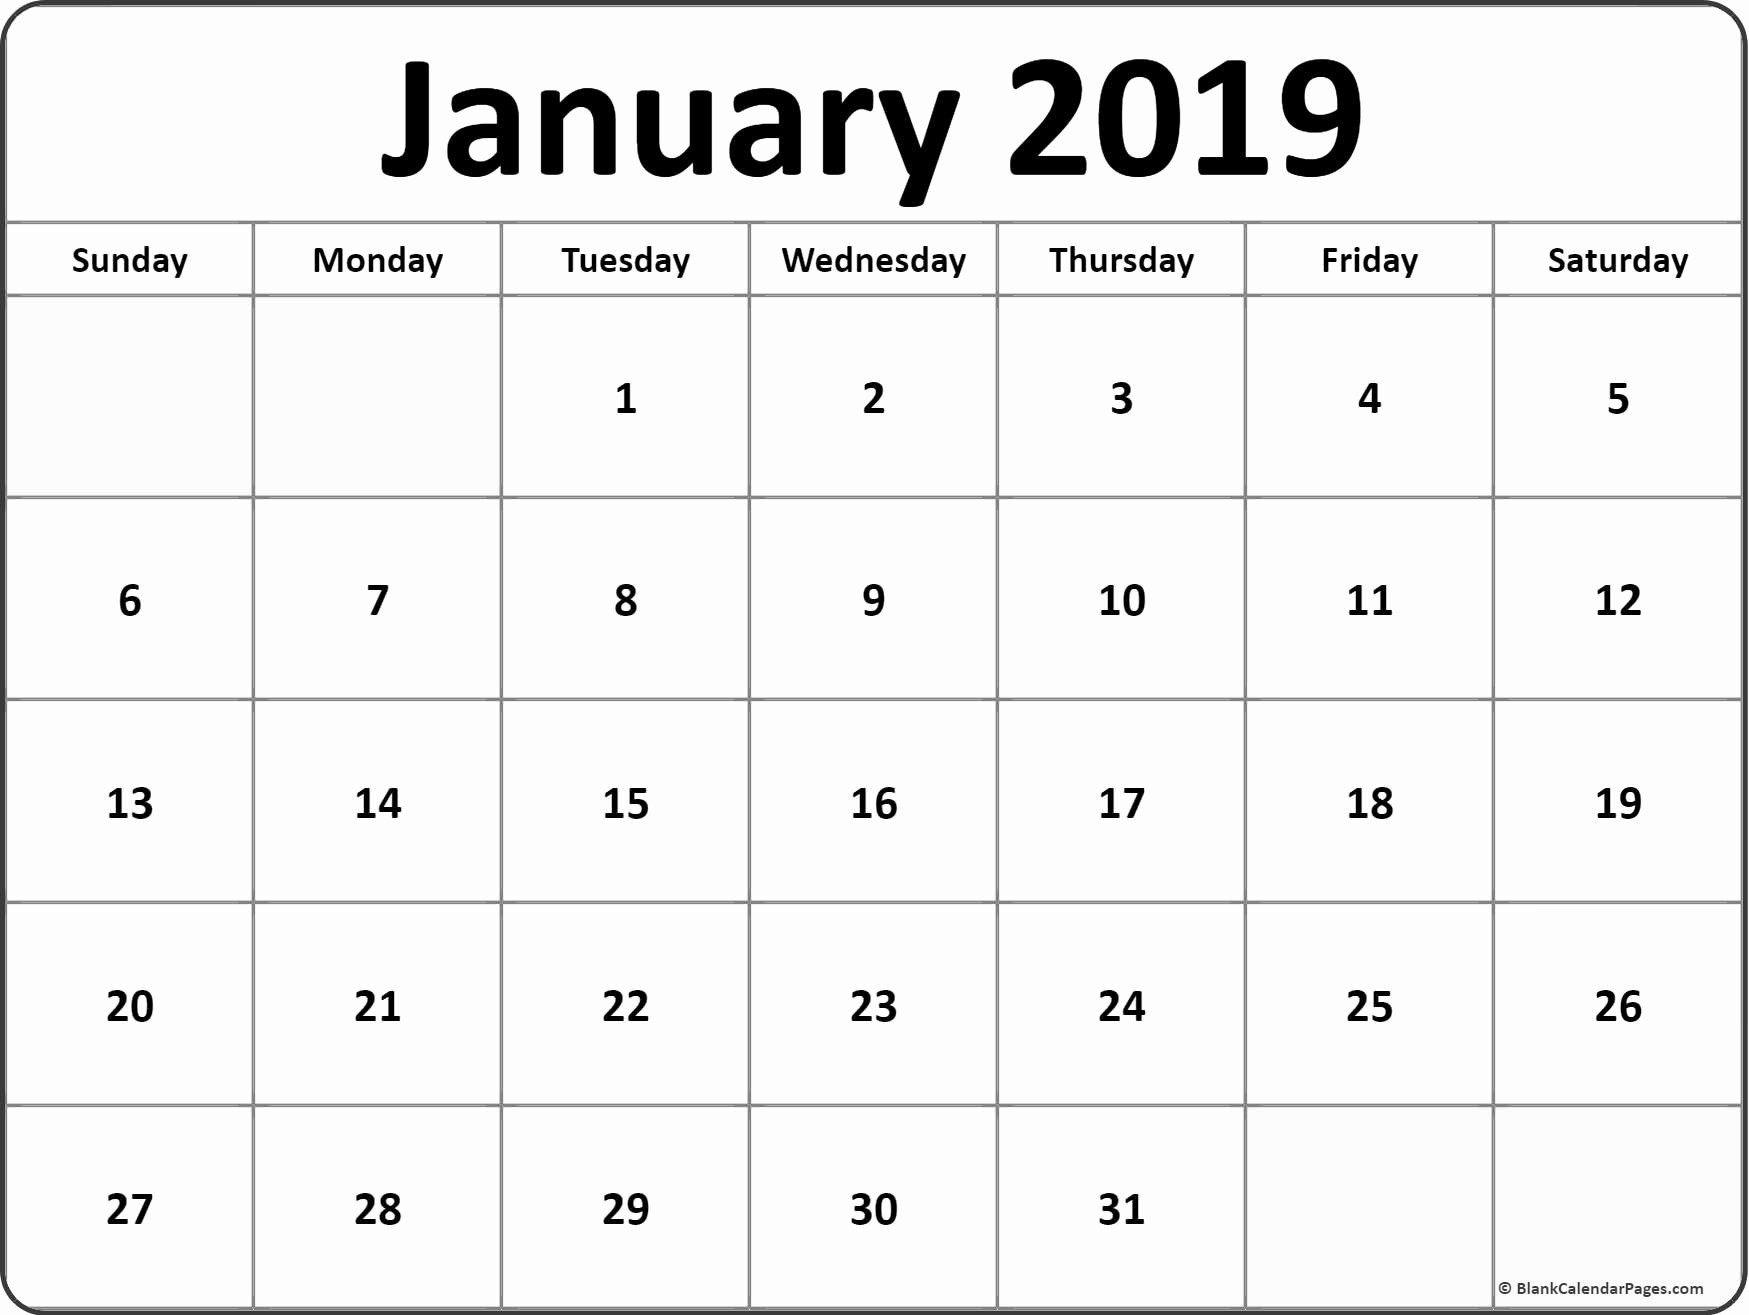 Free Printable Weekly Calendar 2019 New January 2019 Blank Calendar Templates